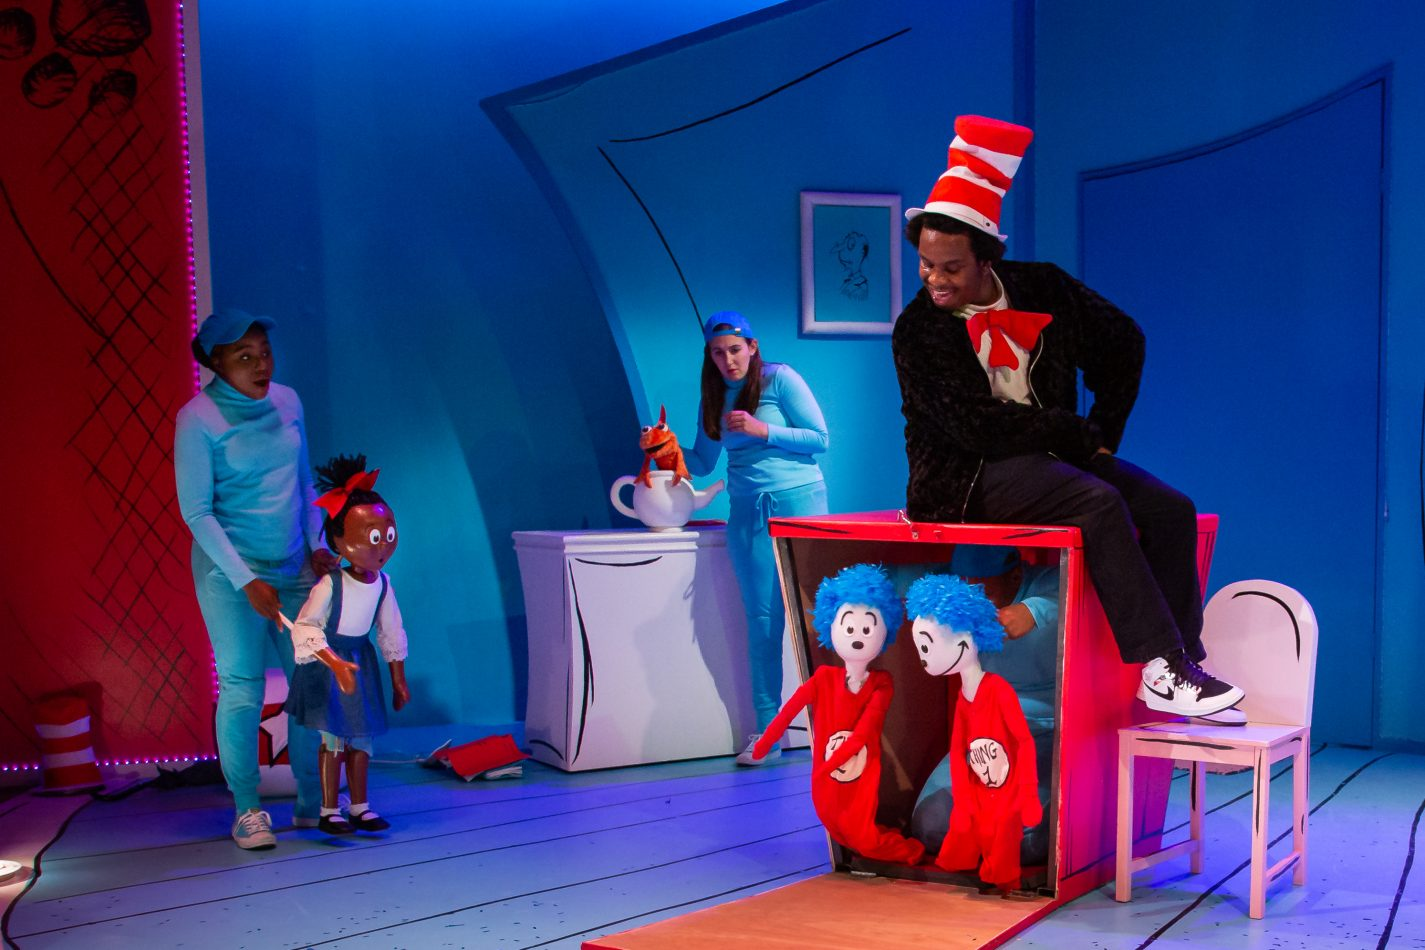 The Cat (Louis E. Davis) introduces Sally (Debora Crabbe) and the Fish (Caroline Wolfson) to Thing 1 and Thing 2.